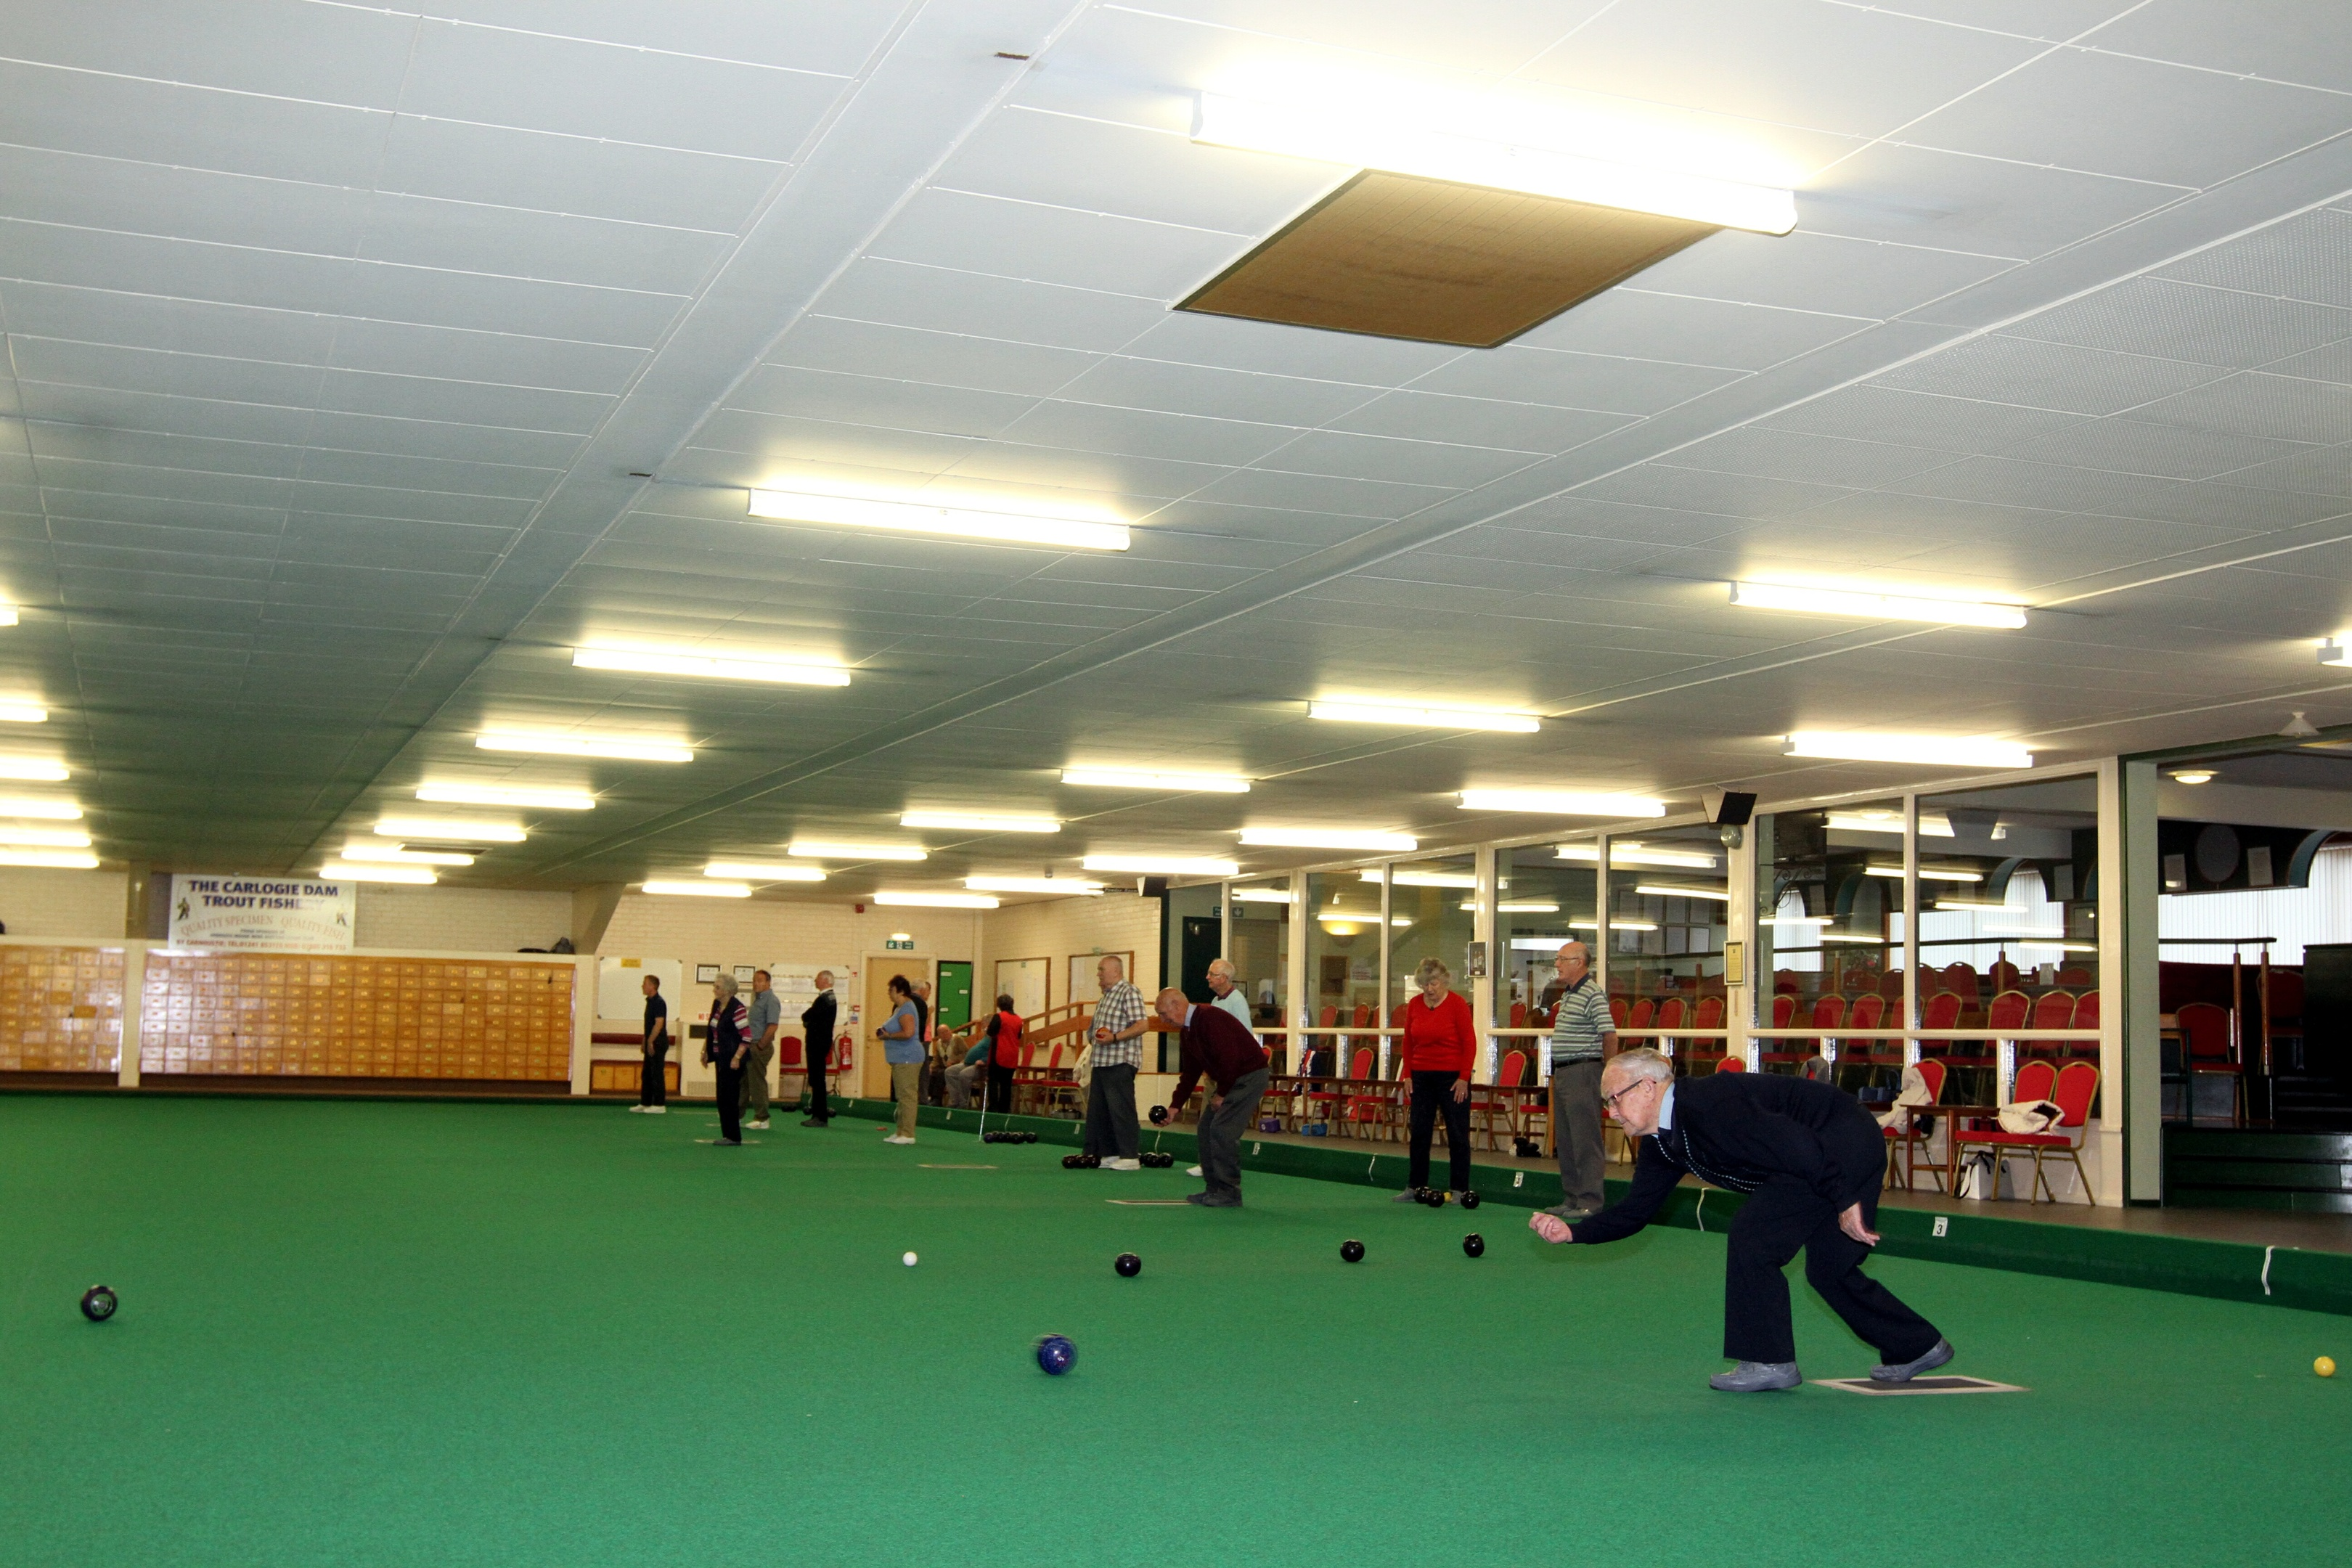 Bowlers in action at Arbroath & District Indoor Bowling Club.